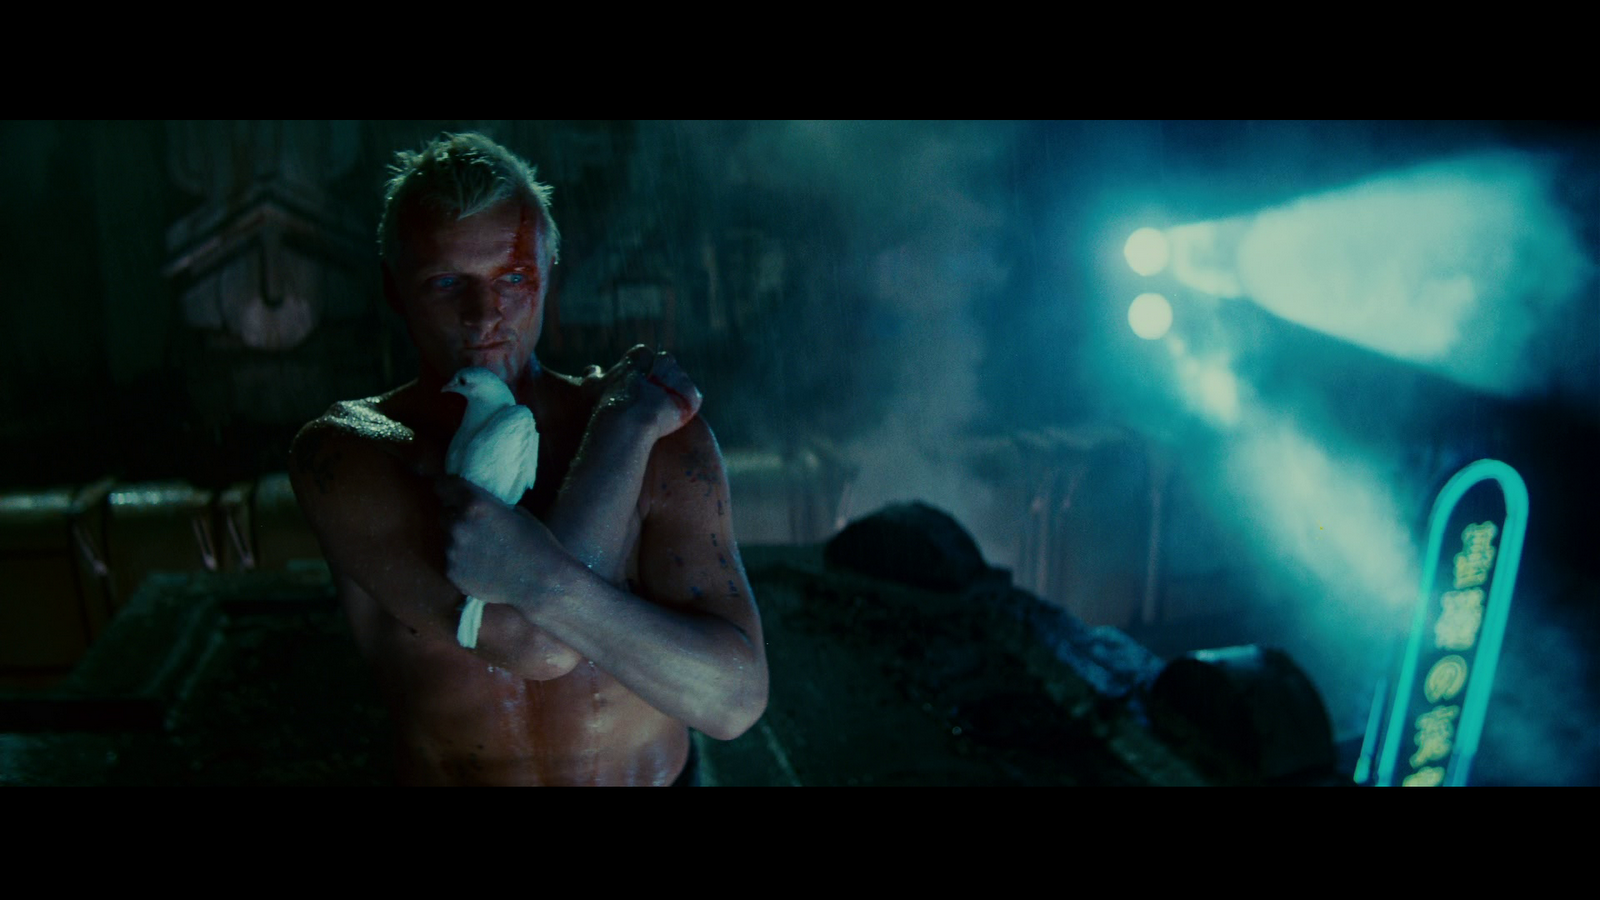 Gimme More Bananas: Blade Runner - photo#37